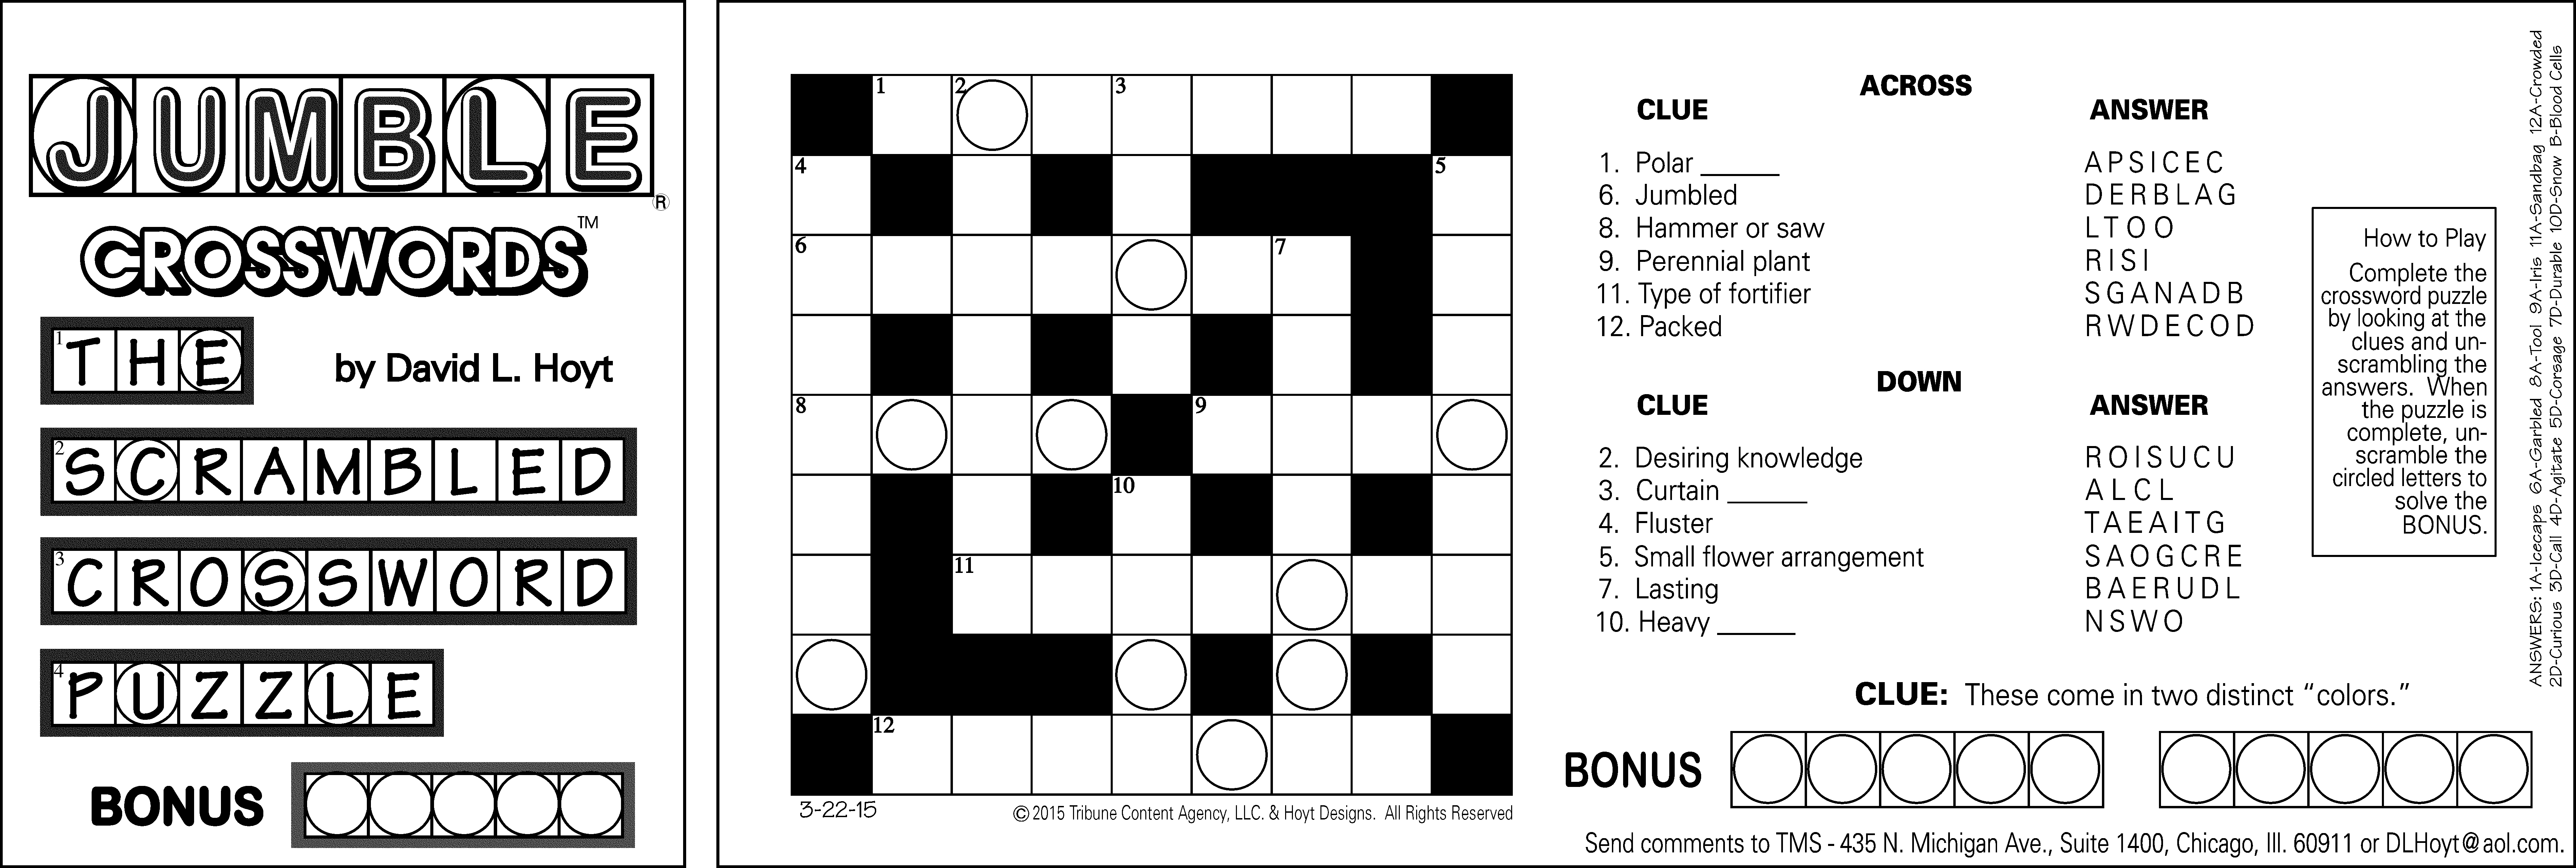 image about Printable Chicago Tribune Crossword known as Printable Jumble Crossword Puzzles Printable Crossword Puzzles